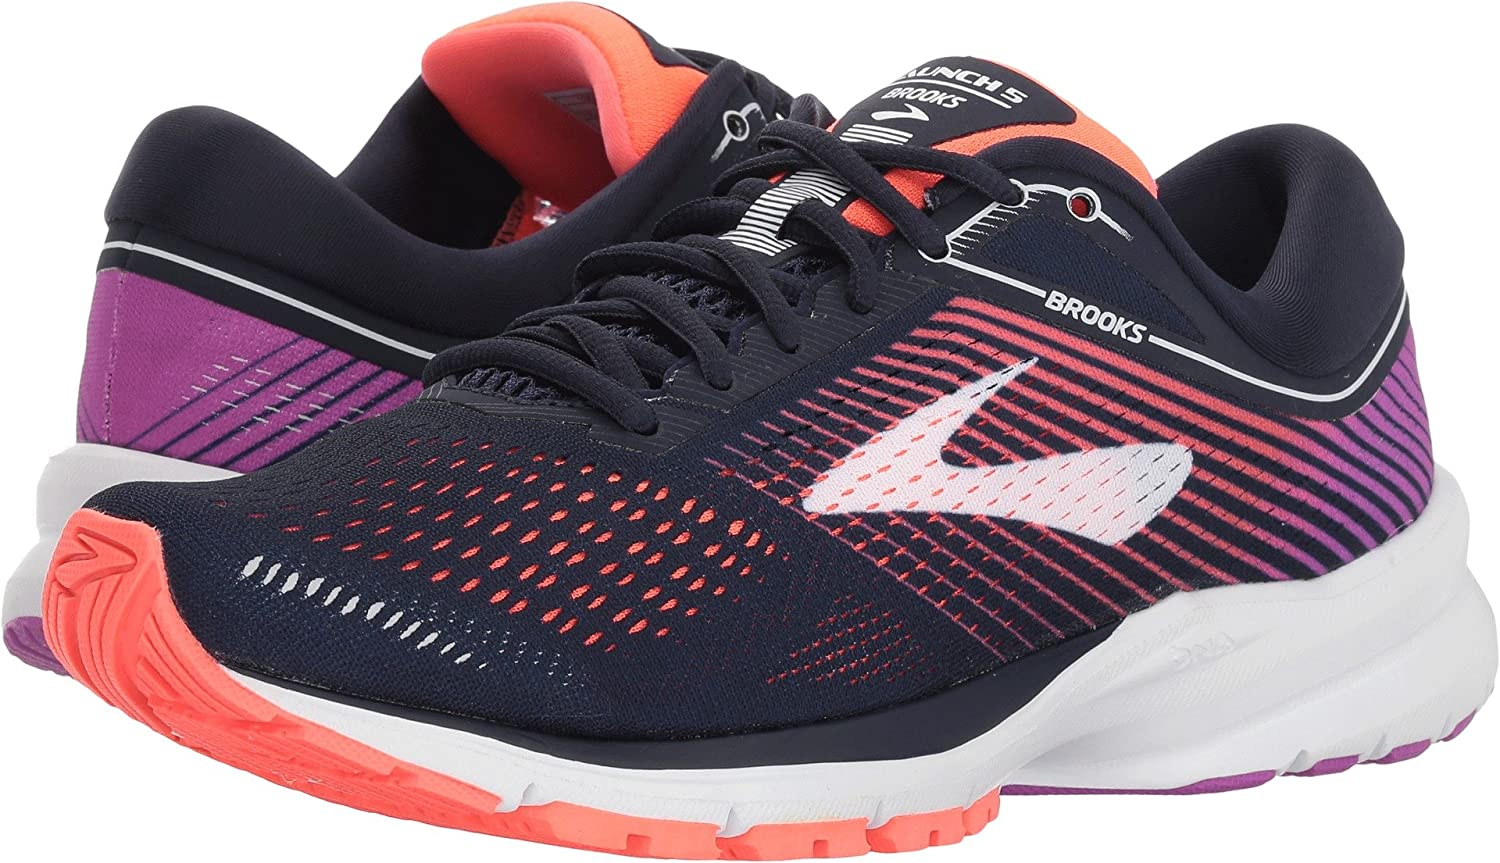 Brooks Womens Launch 5 B077K89JQV 6.5 B(M) US|Navy/Coral/Purple